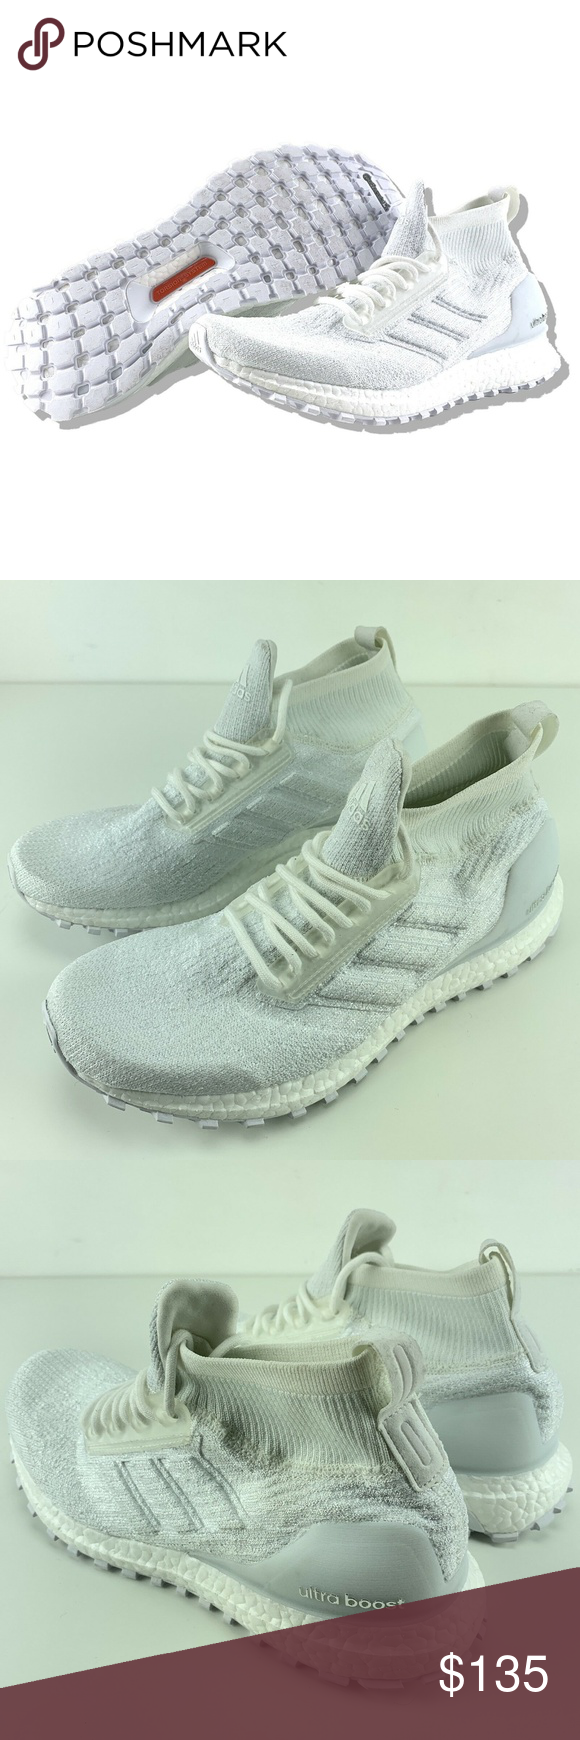 b6079a4c4b4 Adidas Ultra Boost Triple White Adidas Ultra Boost Triple White Size 8.5  Mens All Terrain ATR Mid Running Shoes Brand New Shoes